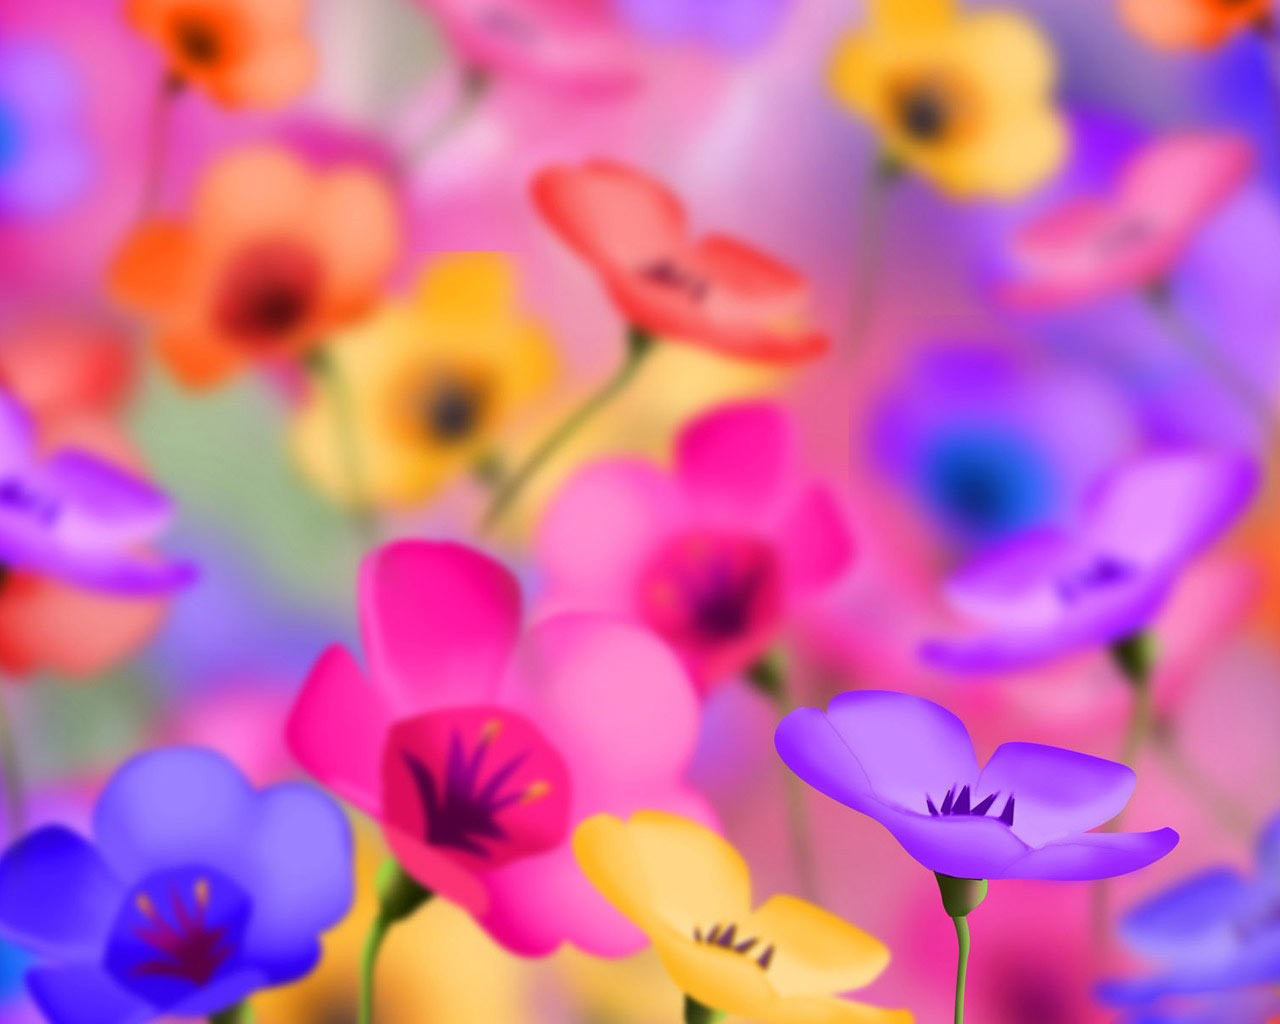 flowers for flower lovers flowers background desktop